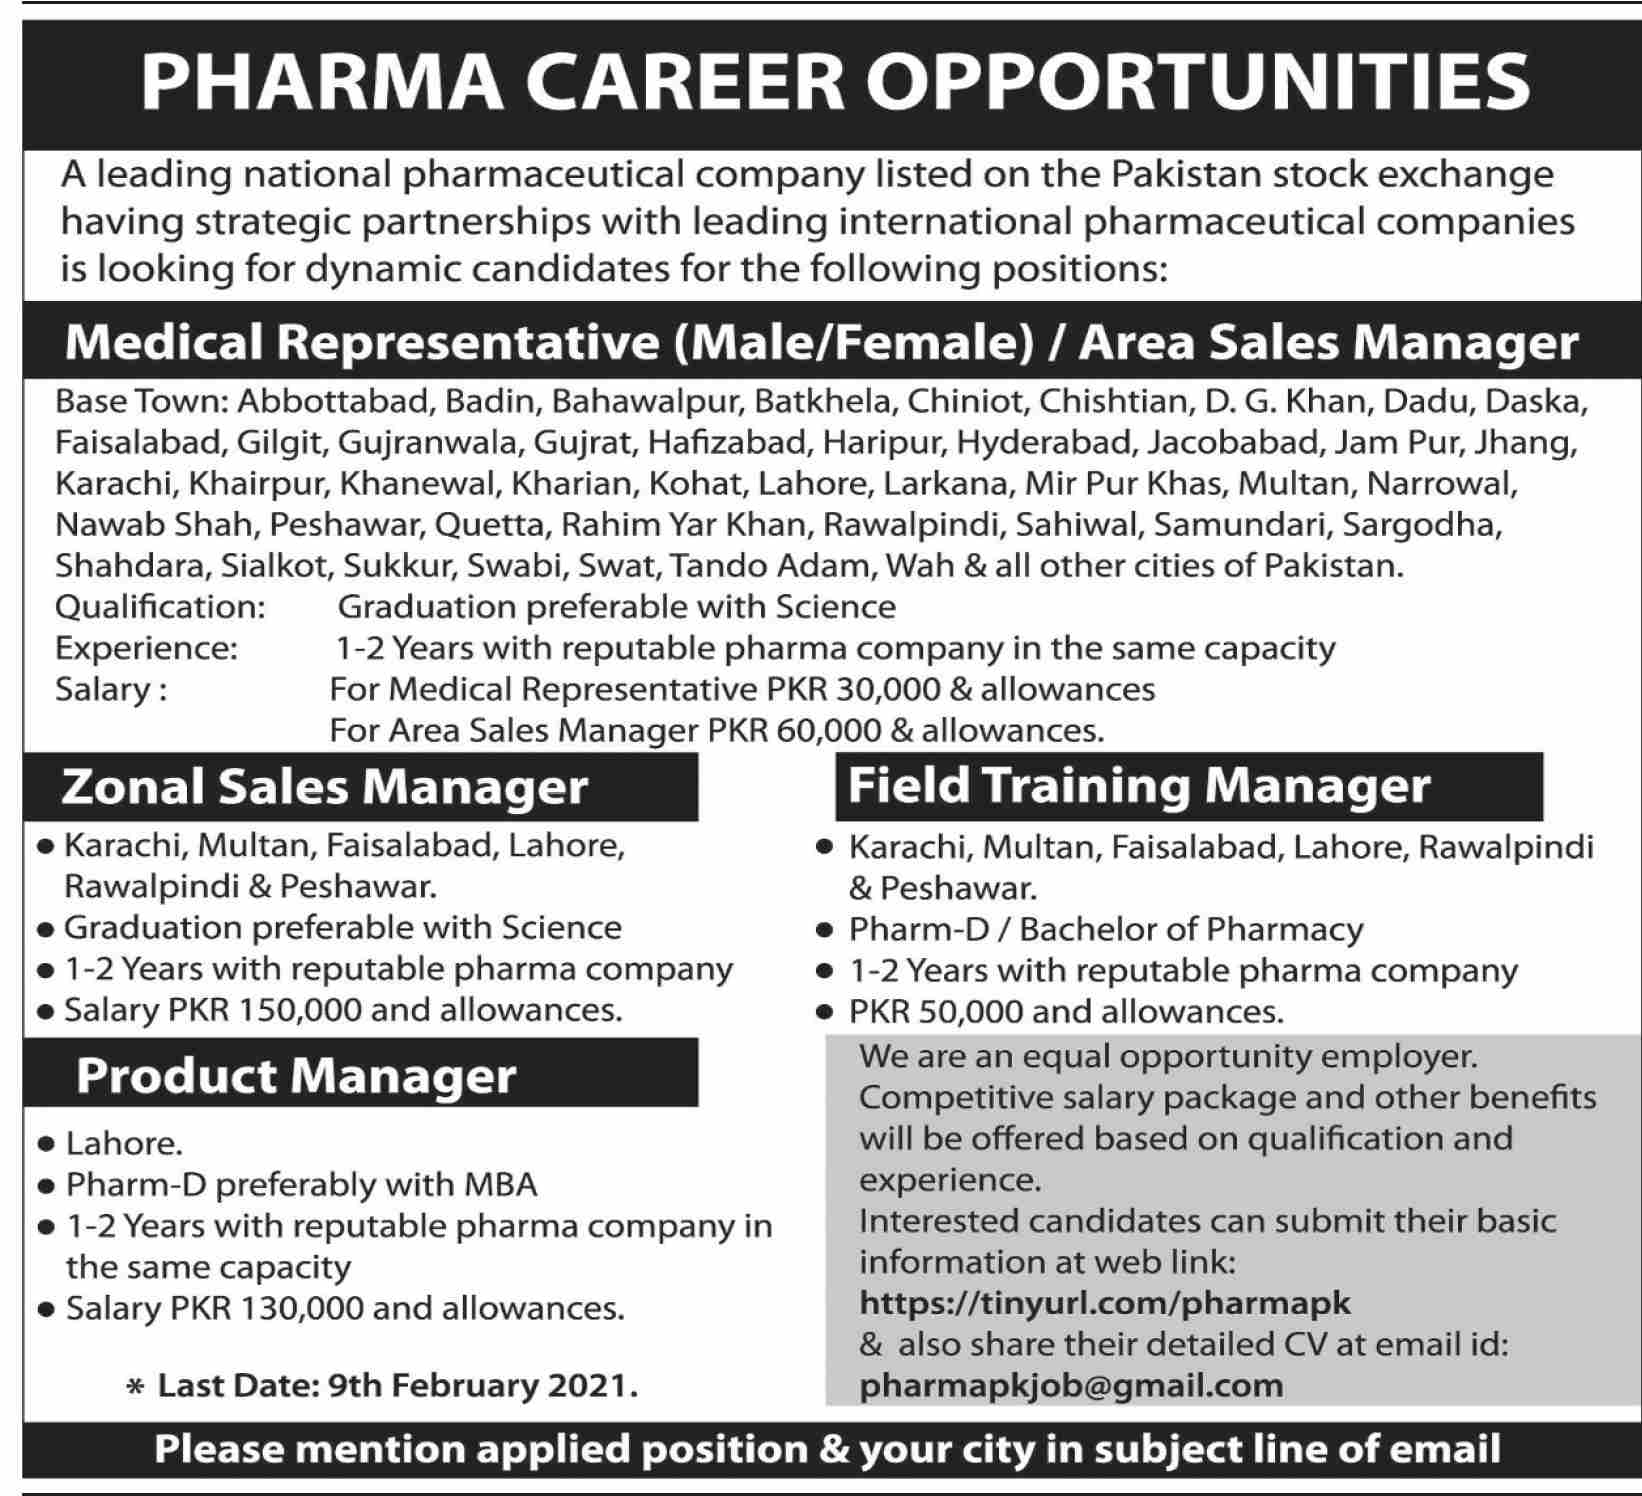 Leading National Pharmaceutical Company Jobs 2021 - Latest Jobs For Male and Female All Pakistan - Online Apply - tinyurl.com/pharmapk - Send Your CV's At - pharmapkjob@gmail.com